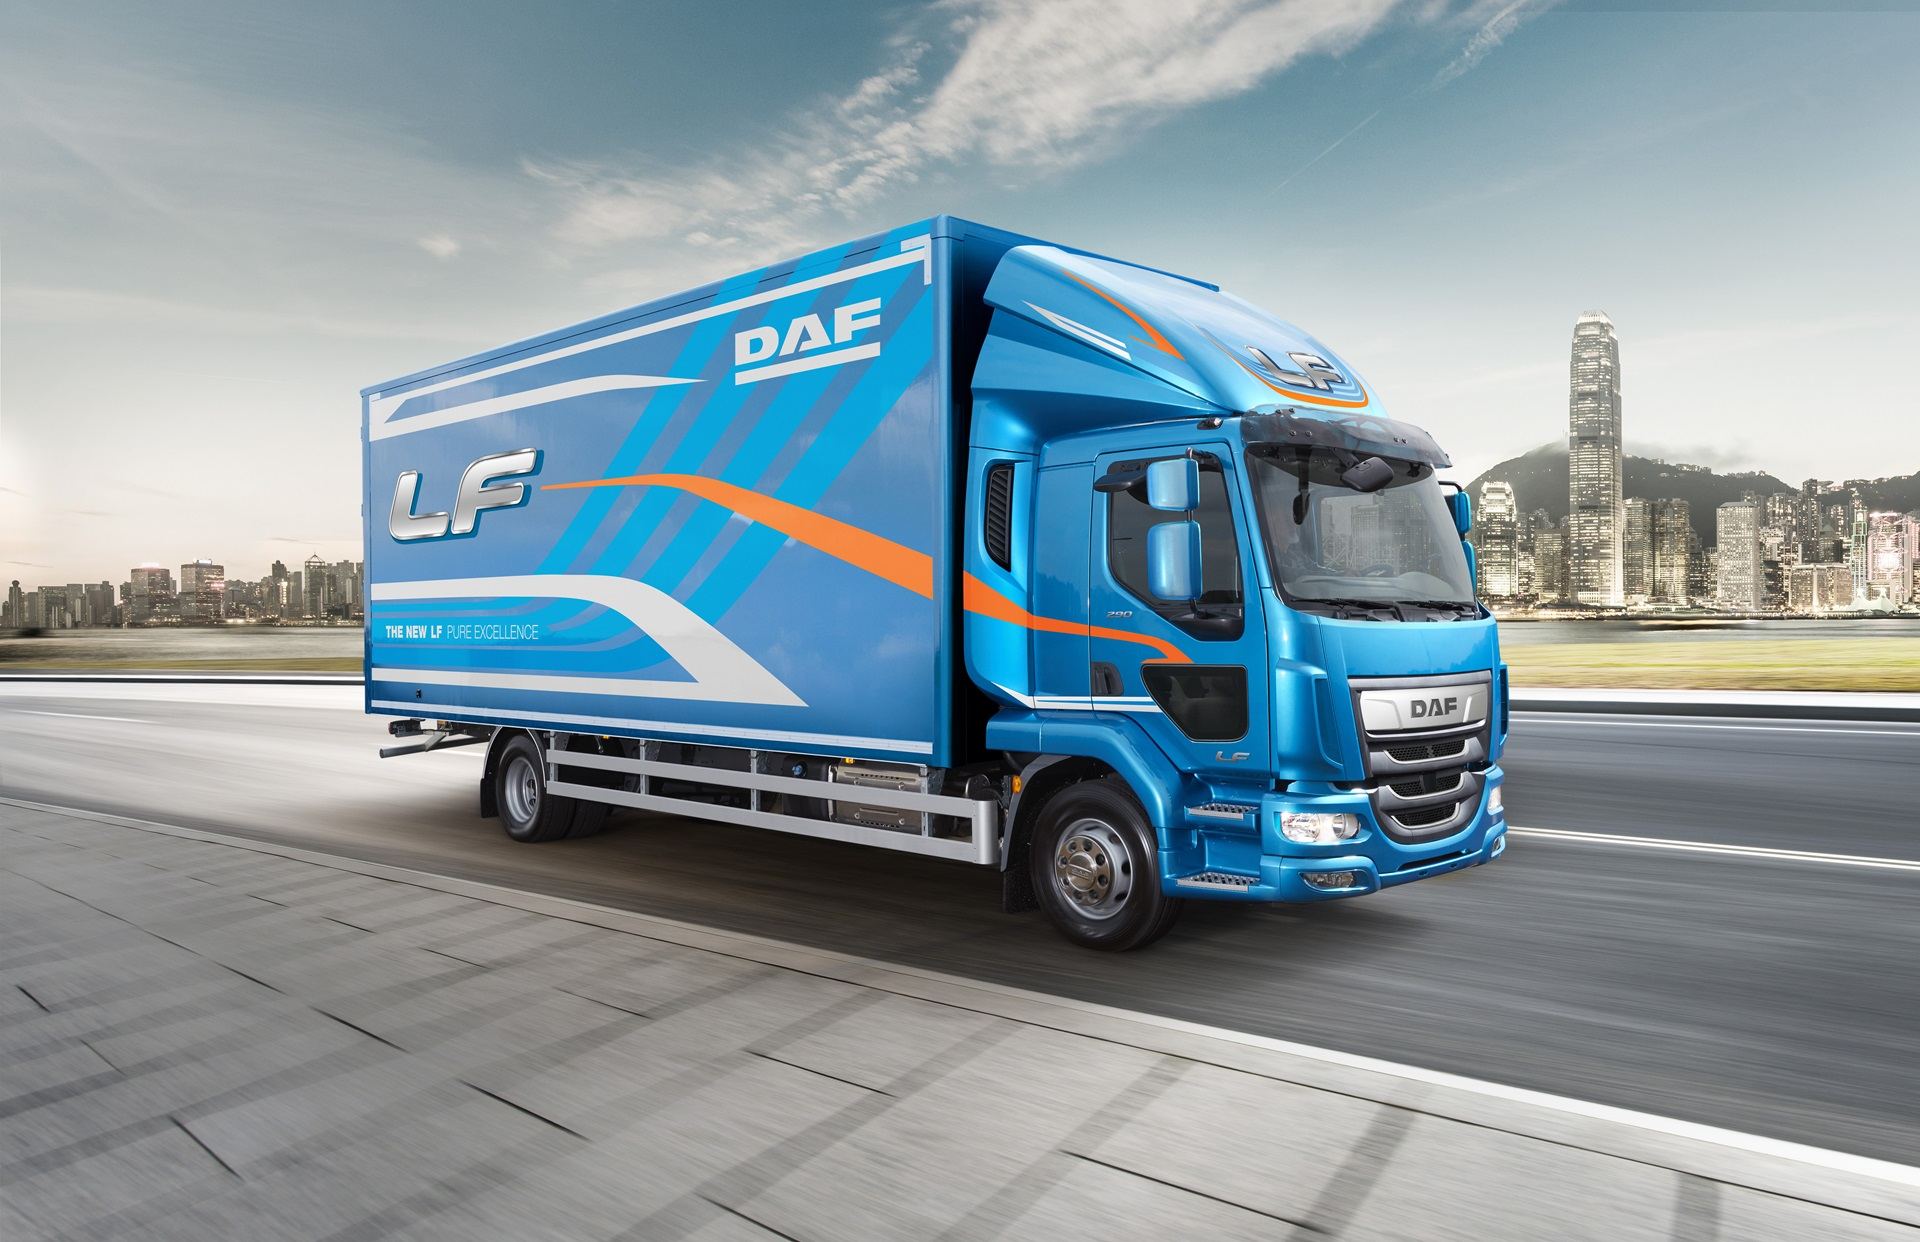 DAF LF Fleet Truck of the Year 2019 in the UK